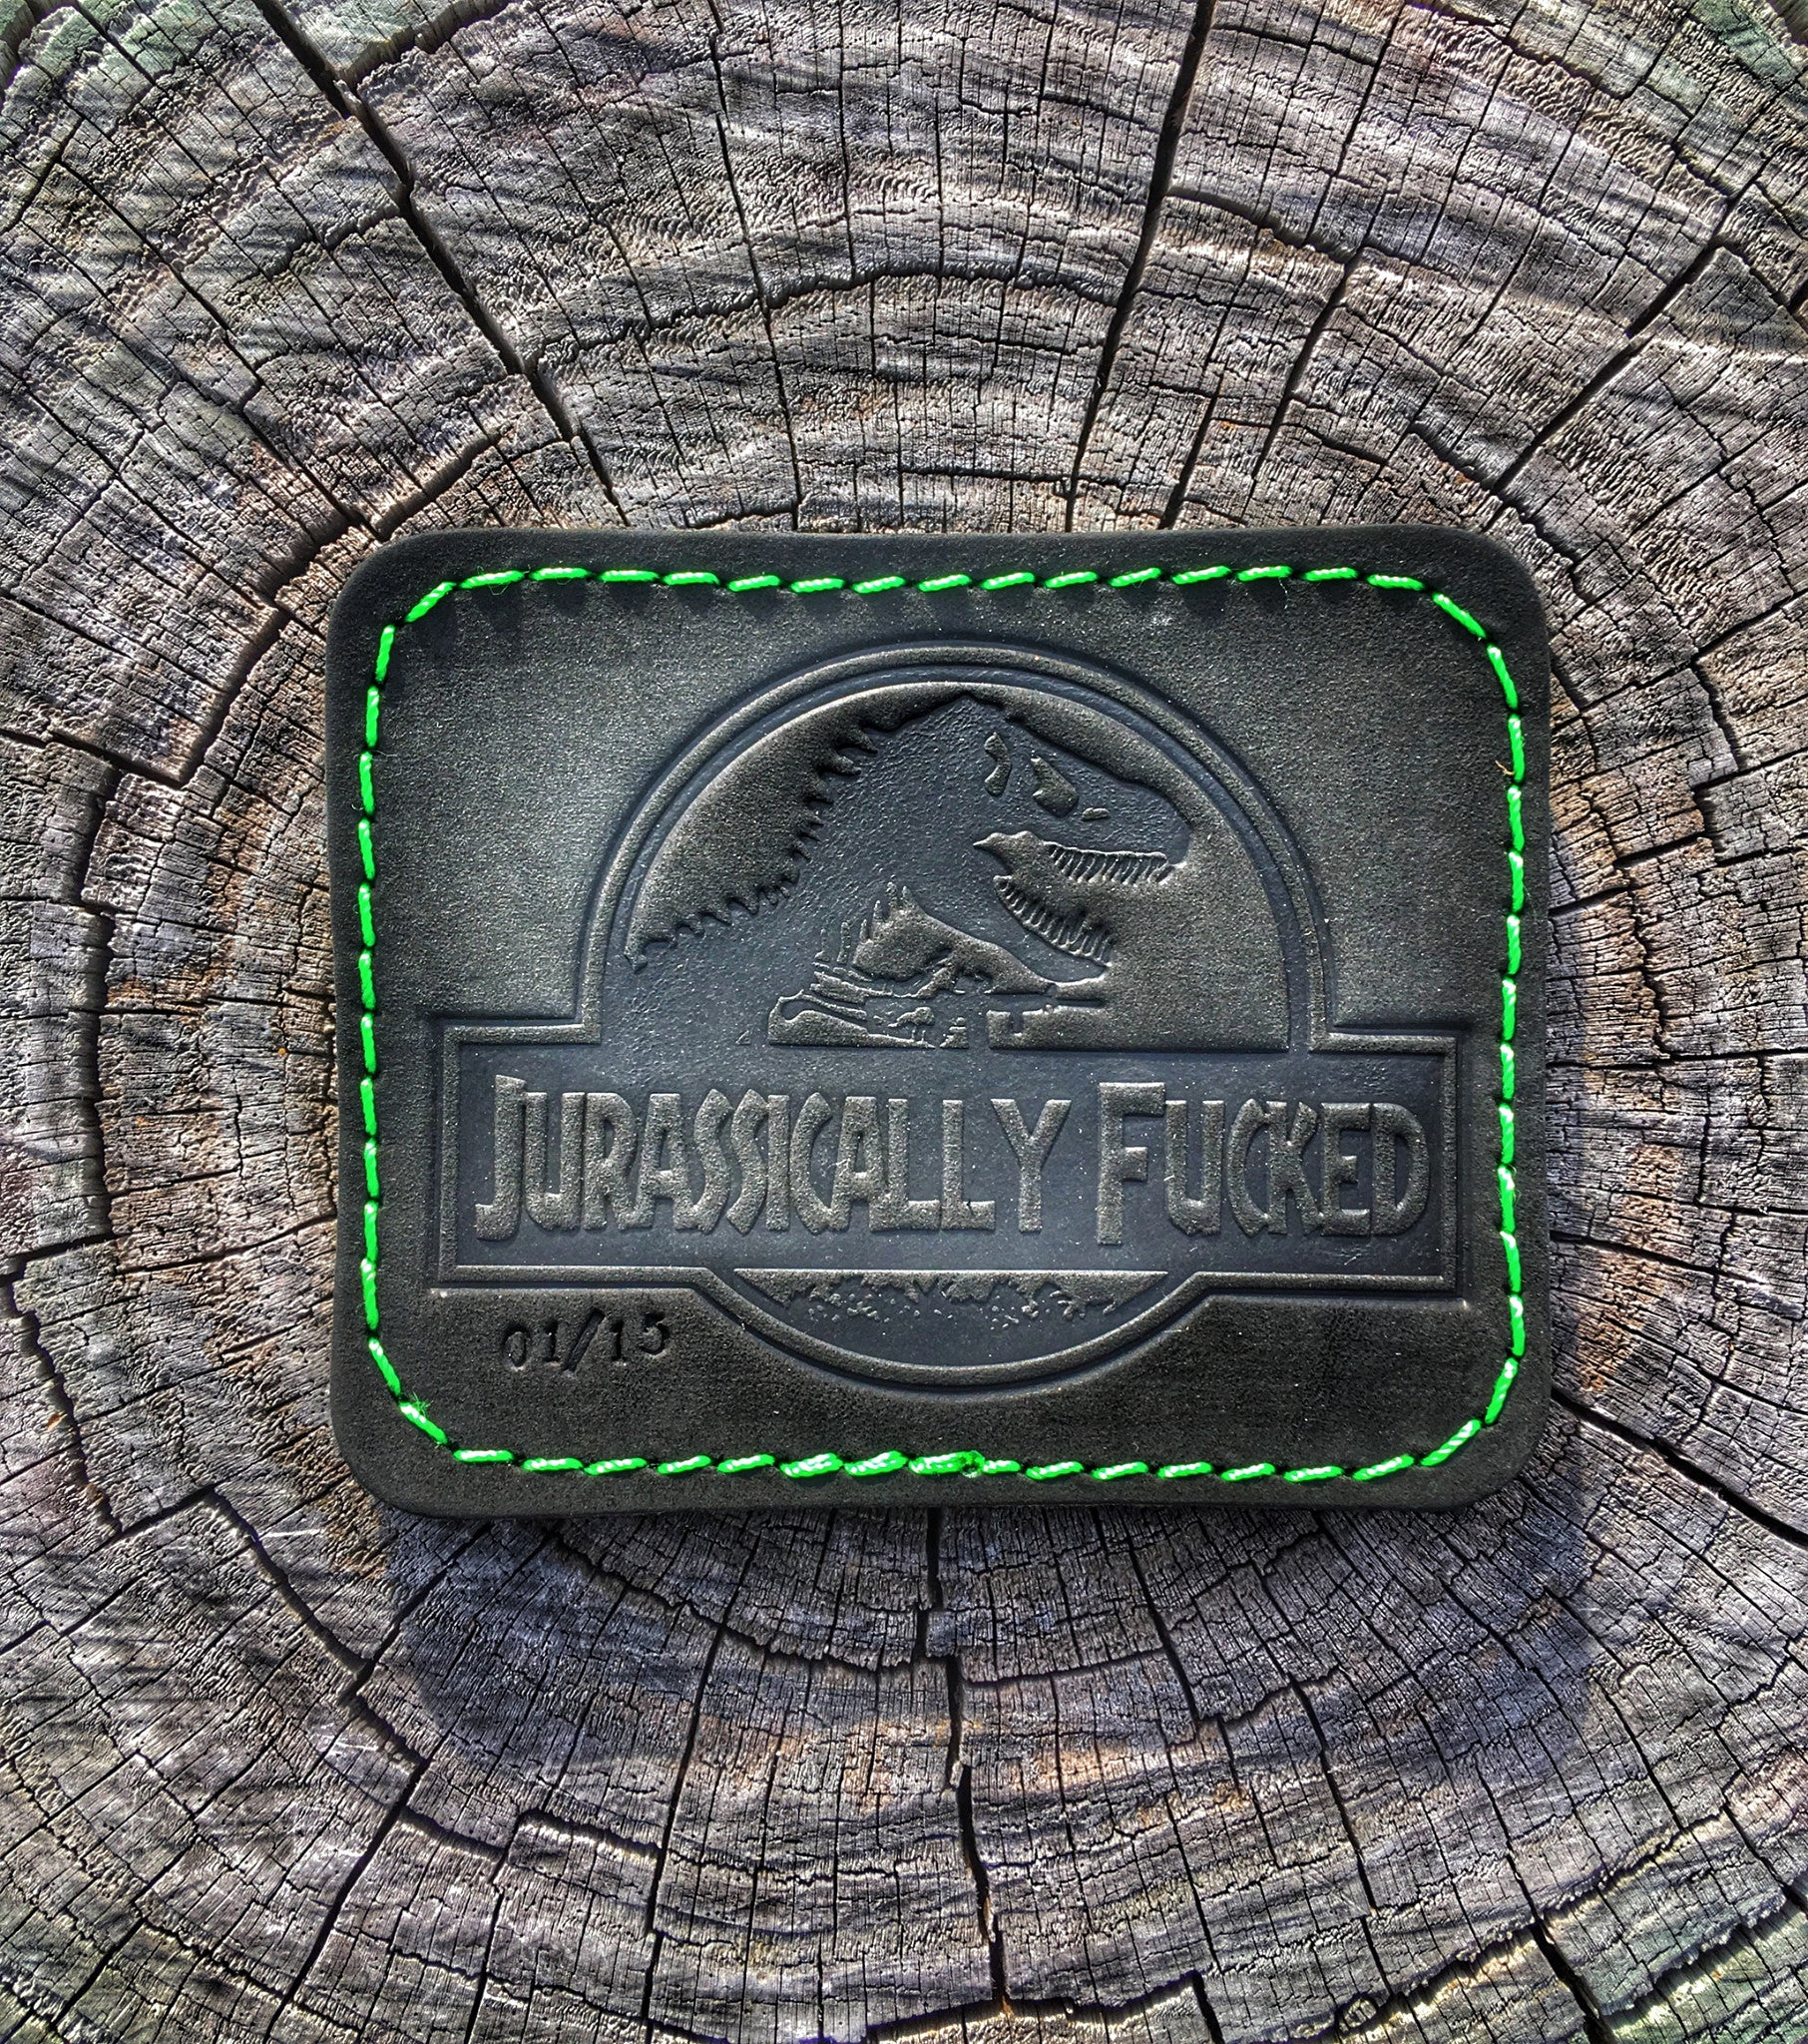 *JUST DROPPED* JURASSICALLY FUCKED BLACK/TOXIC STAMPED & NUMBERED LEATHER 3D MORALE PATCH